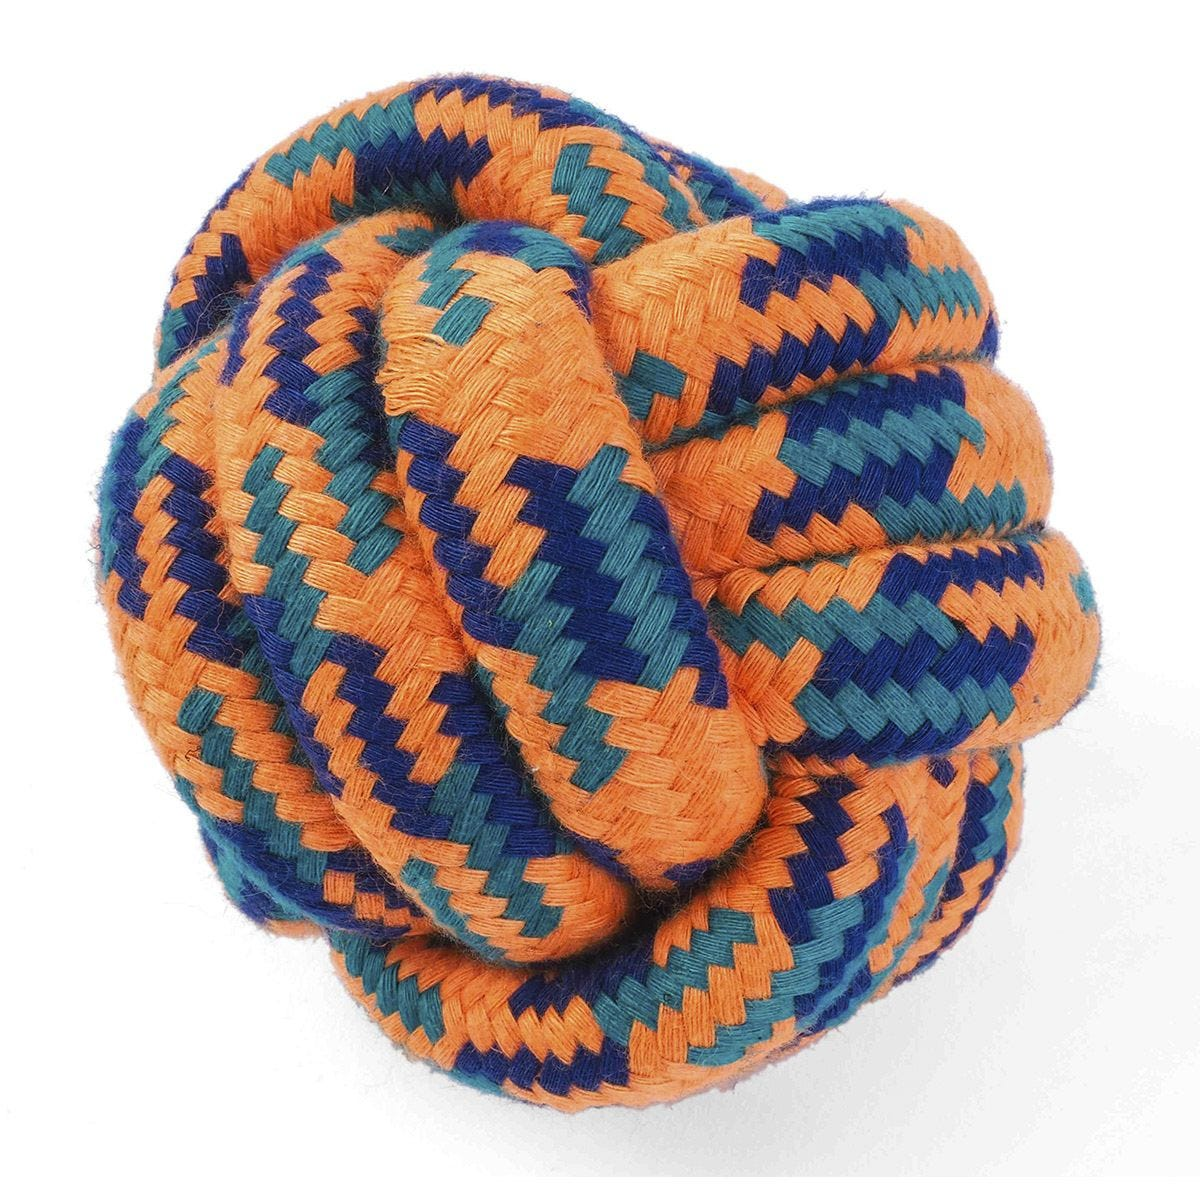 Zoon Uber-Activ Rope Ball Dog Toy